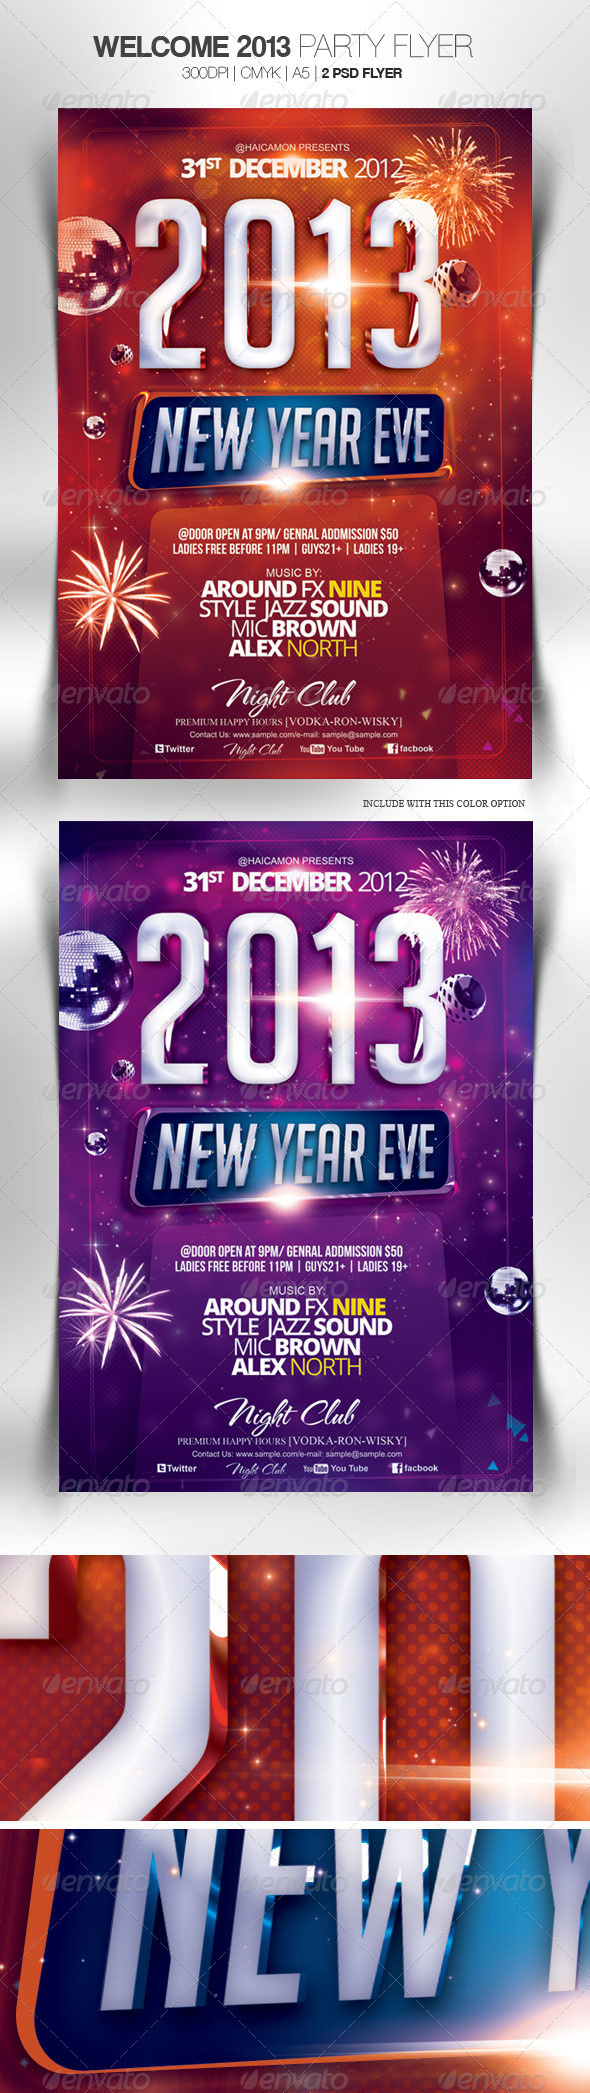 GraphicRiver Welcome 2013 Party Flyer 3602091